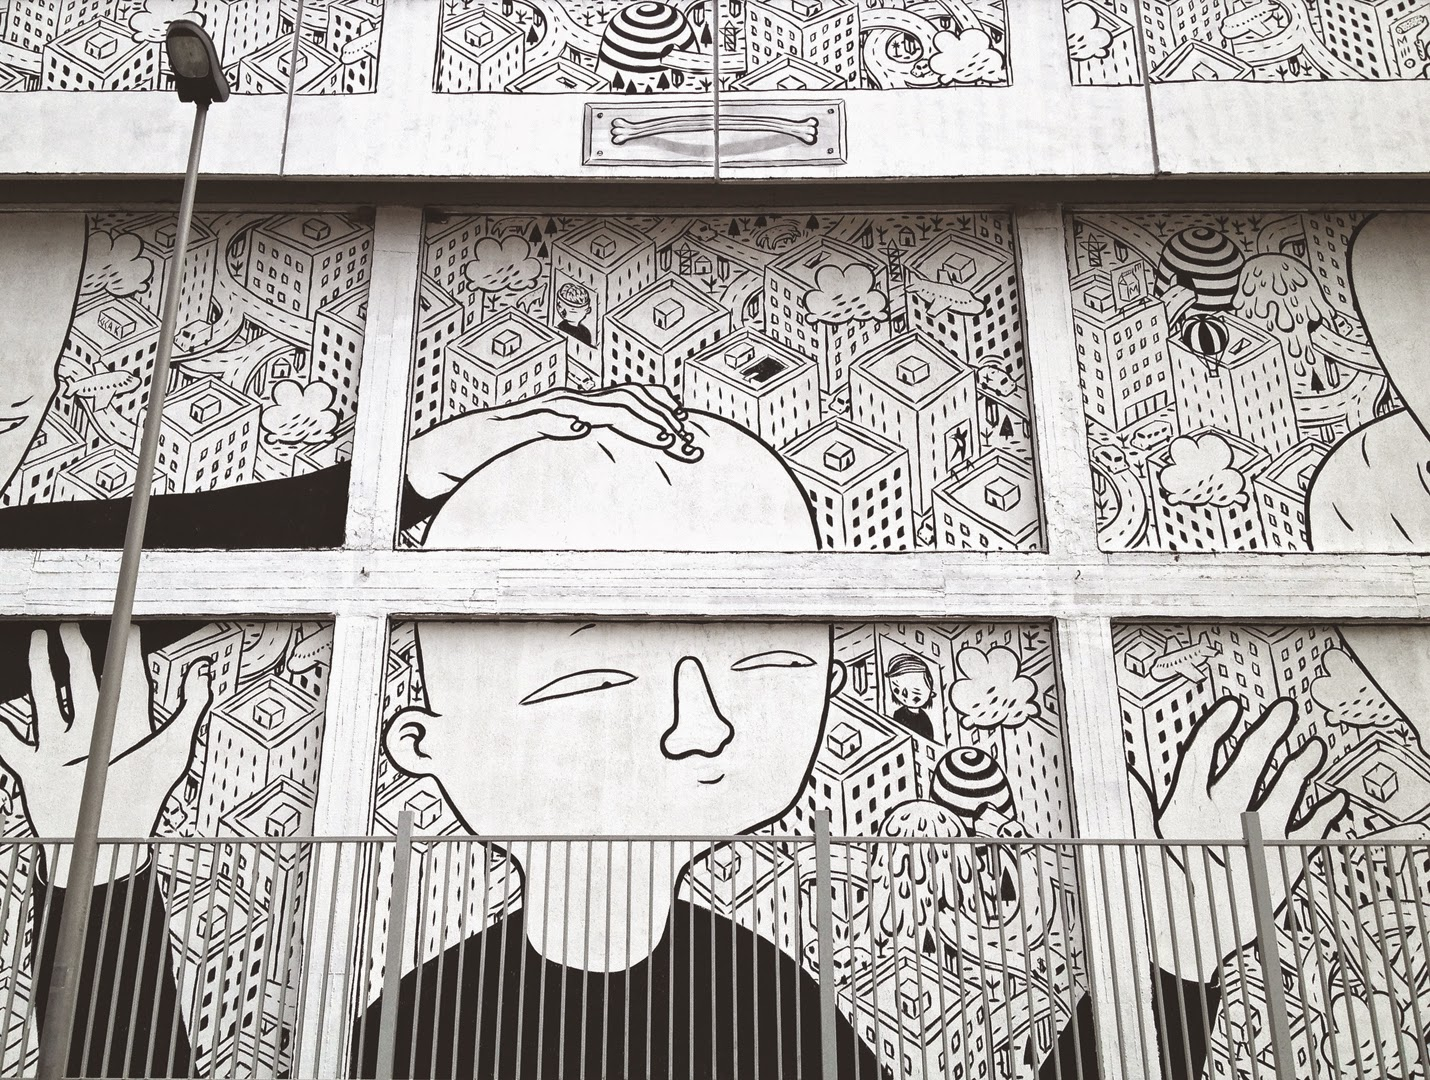 millo-new-mural-in-battipaglia-02